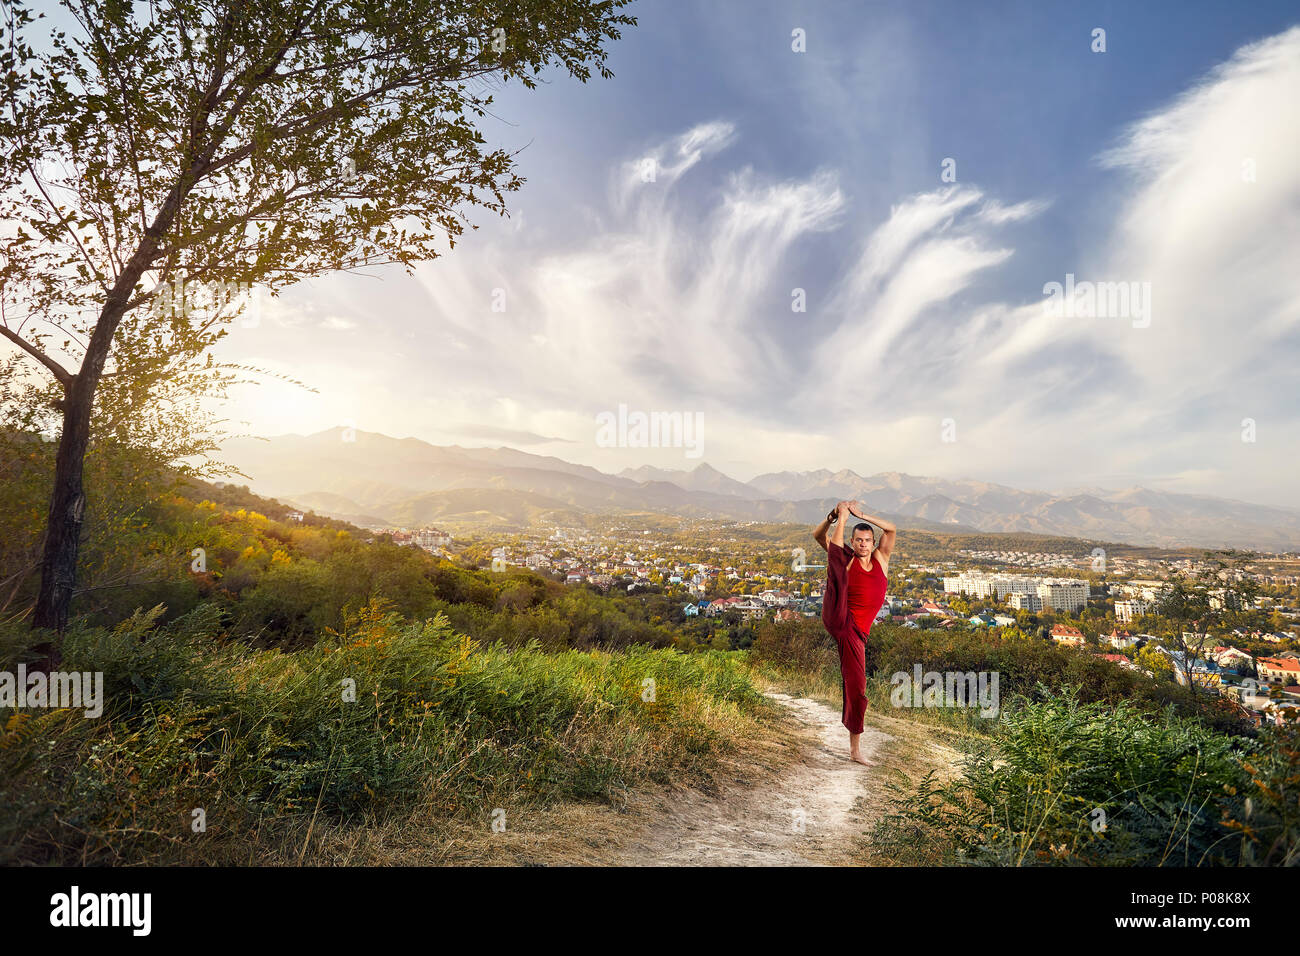 Fit man in red costume doing yoga leg split asana in the park with city and mountain on background in Kazakhstan - Stock Image